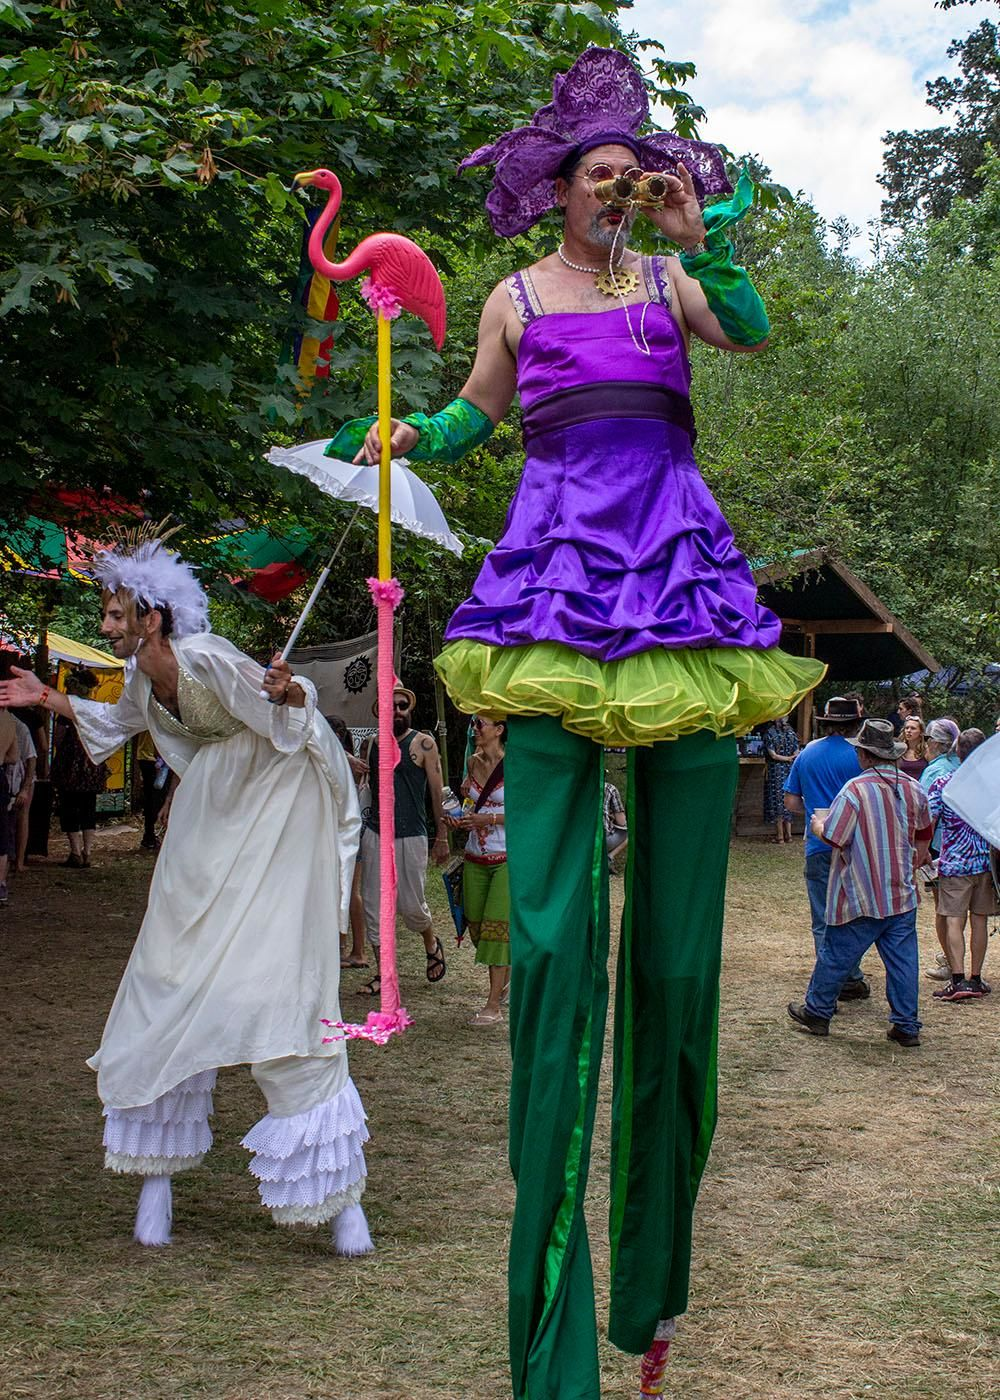 The Oregon Country Fair kicked off its 50th anniversary Friday, July 12, 2019 with massive crowds. Organizers say more than 20,000 people purchased tickets the first day. Saturday is expected to be even busier. The fair is held every year in Veneta, Ore. and features music, performers, artists, and plenty of food options. Photo by Amanda Butt